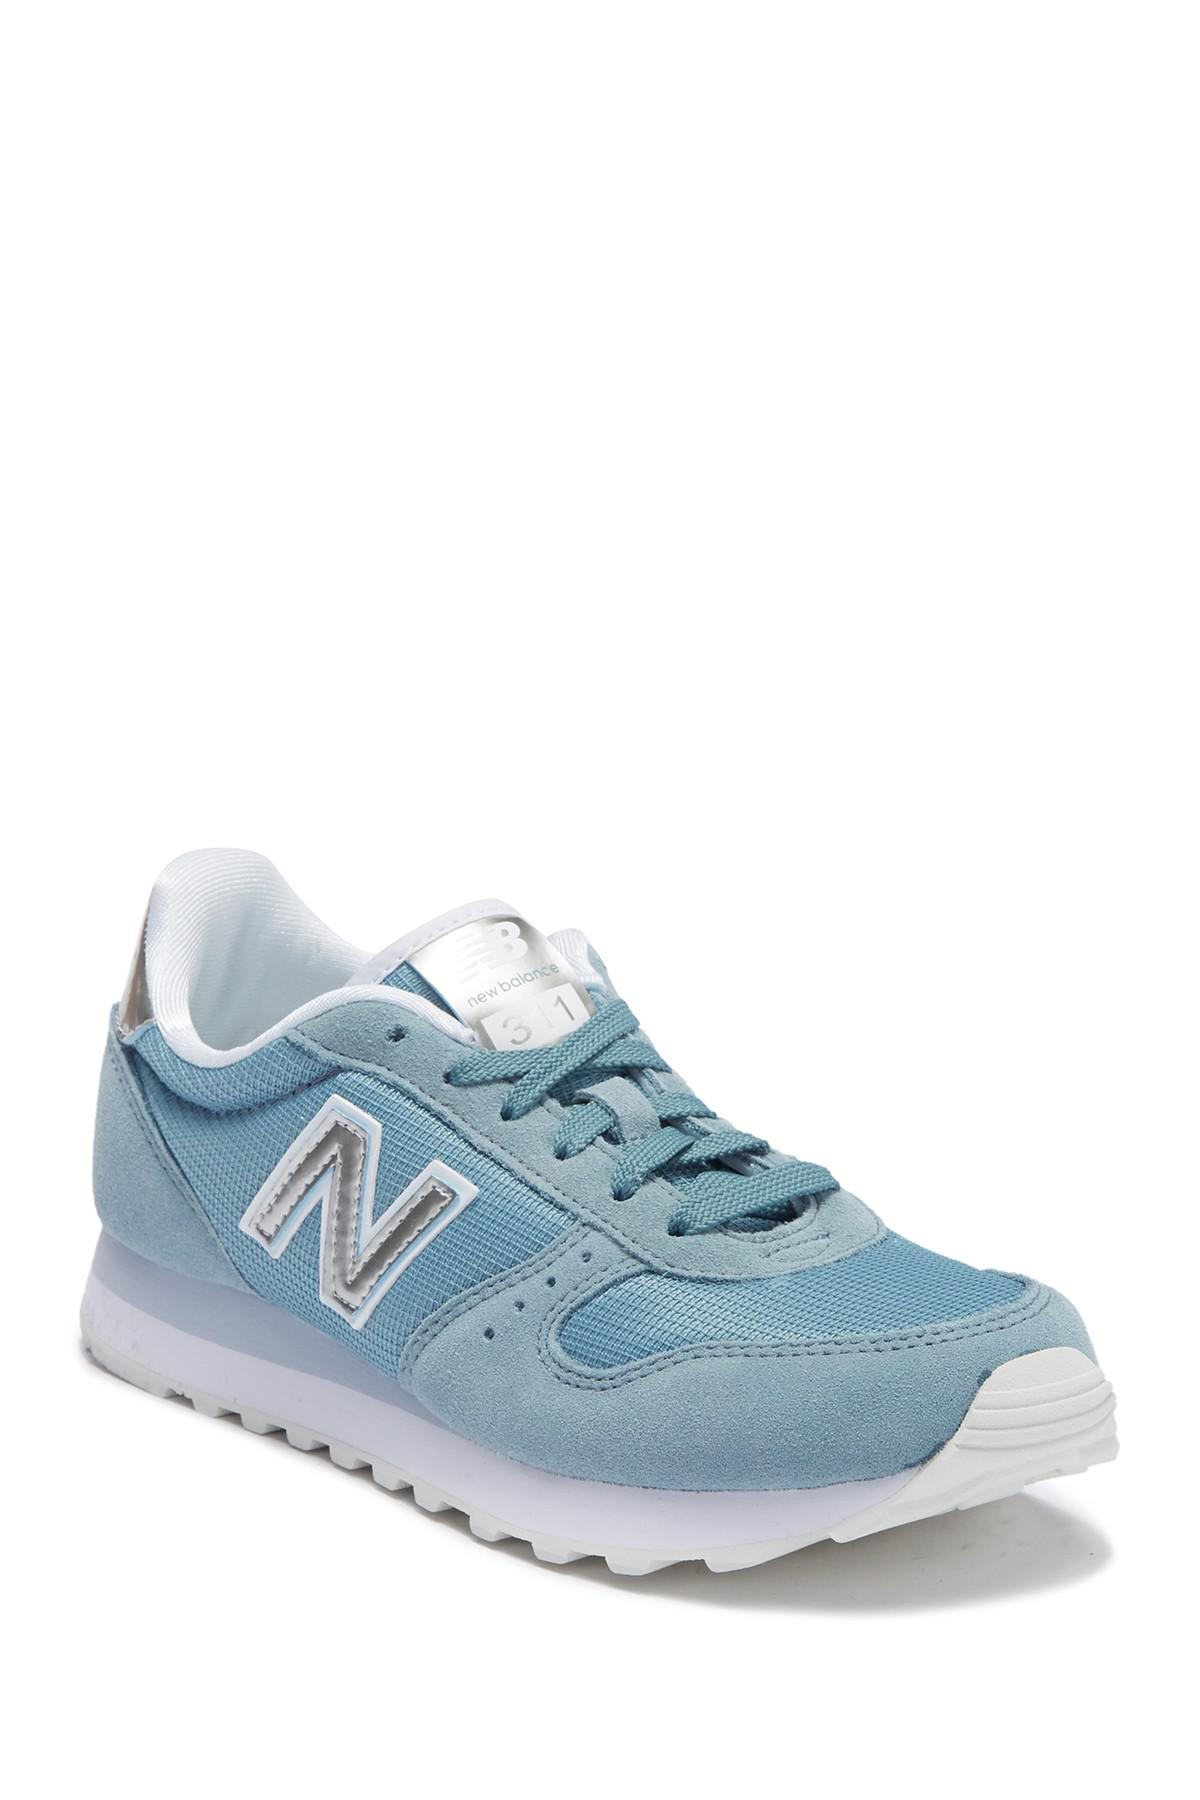 cae5bb0054b New Balance - Blue 311 Classic Sneaker - Wide Width Available - Lyst. View  fullscreen